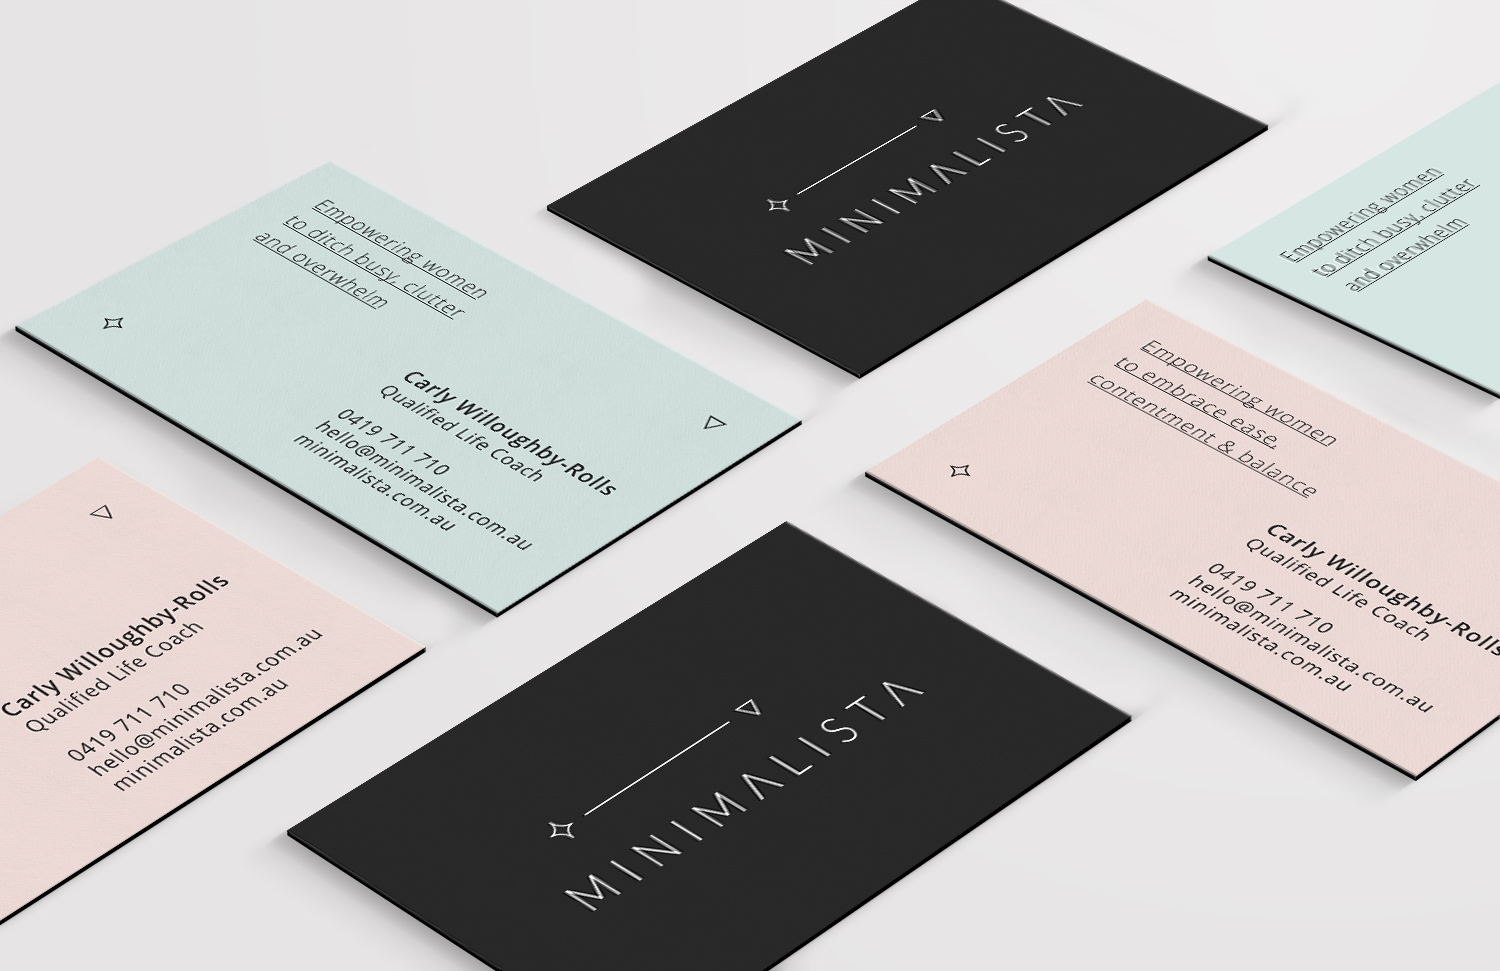 Minimalista's business card design featuring charcoal and pastels